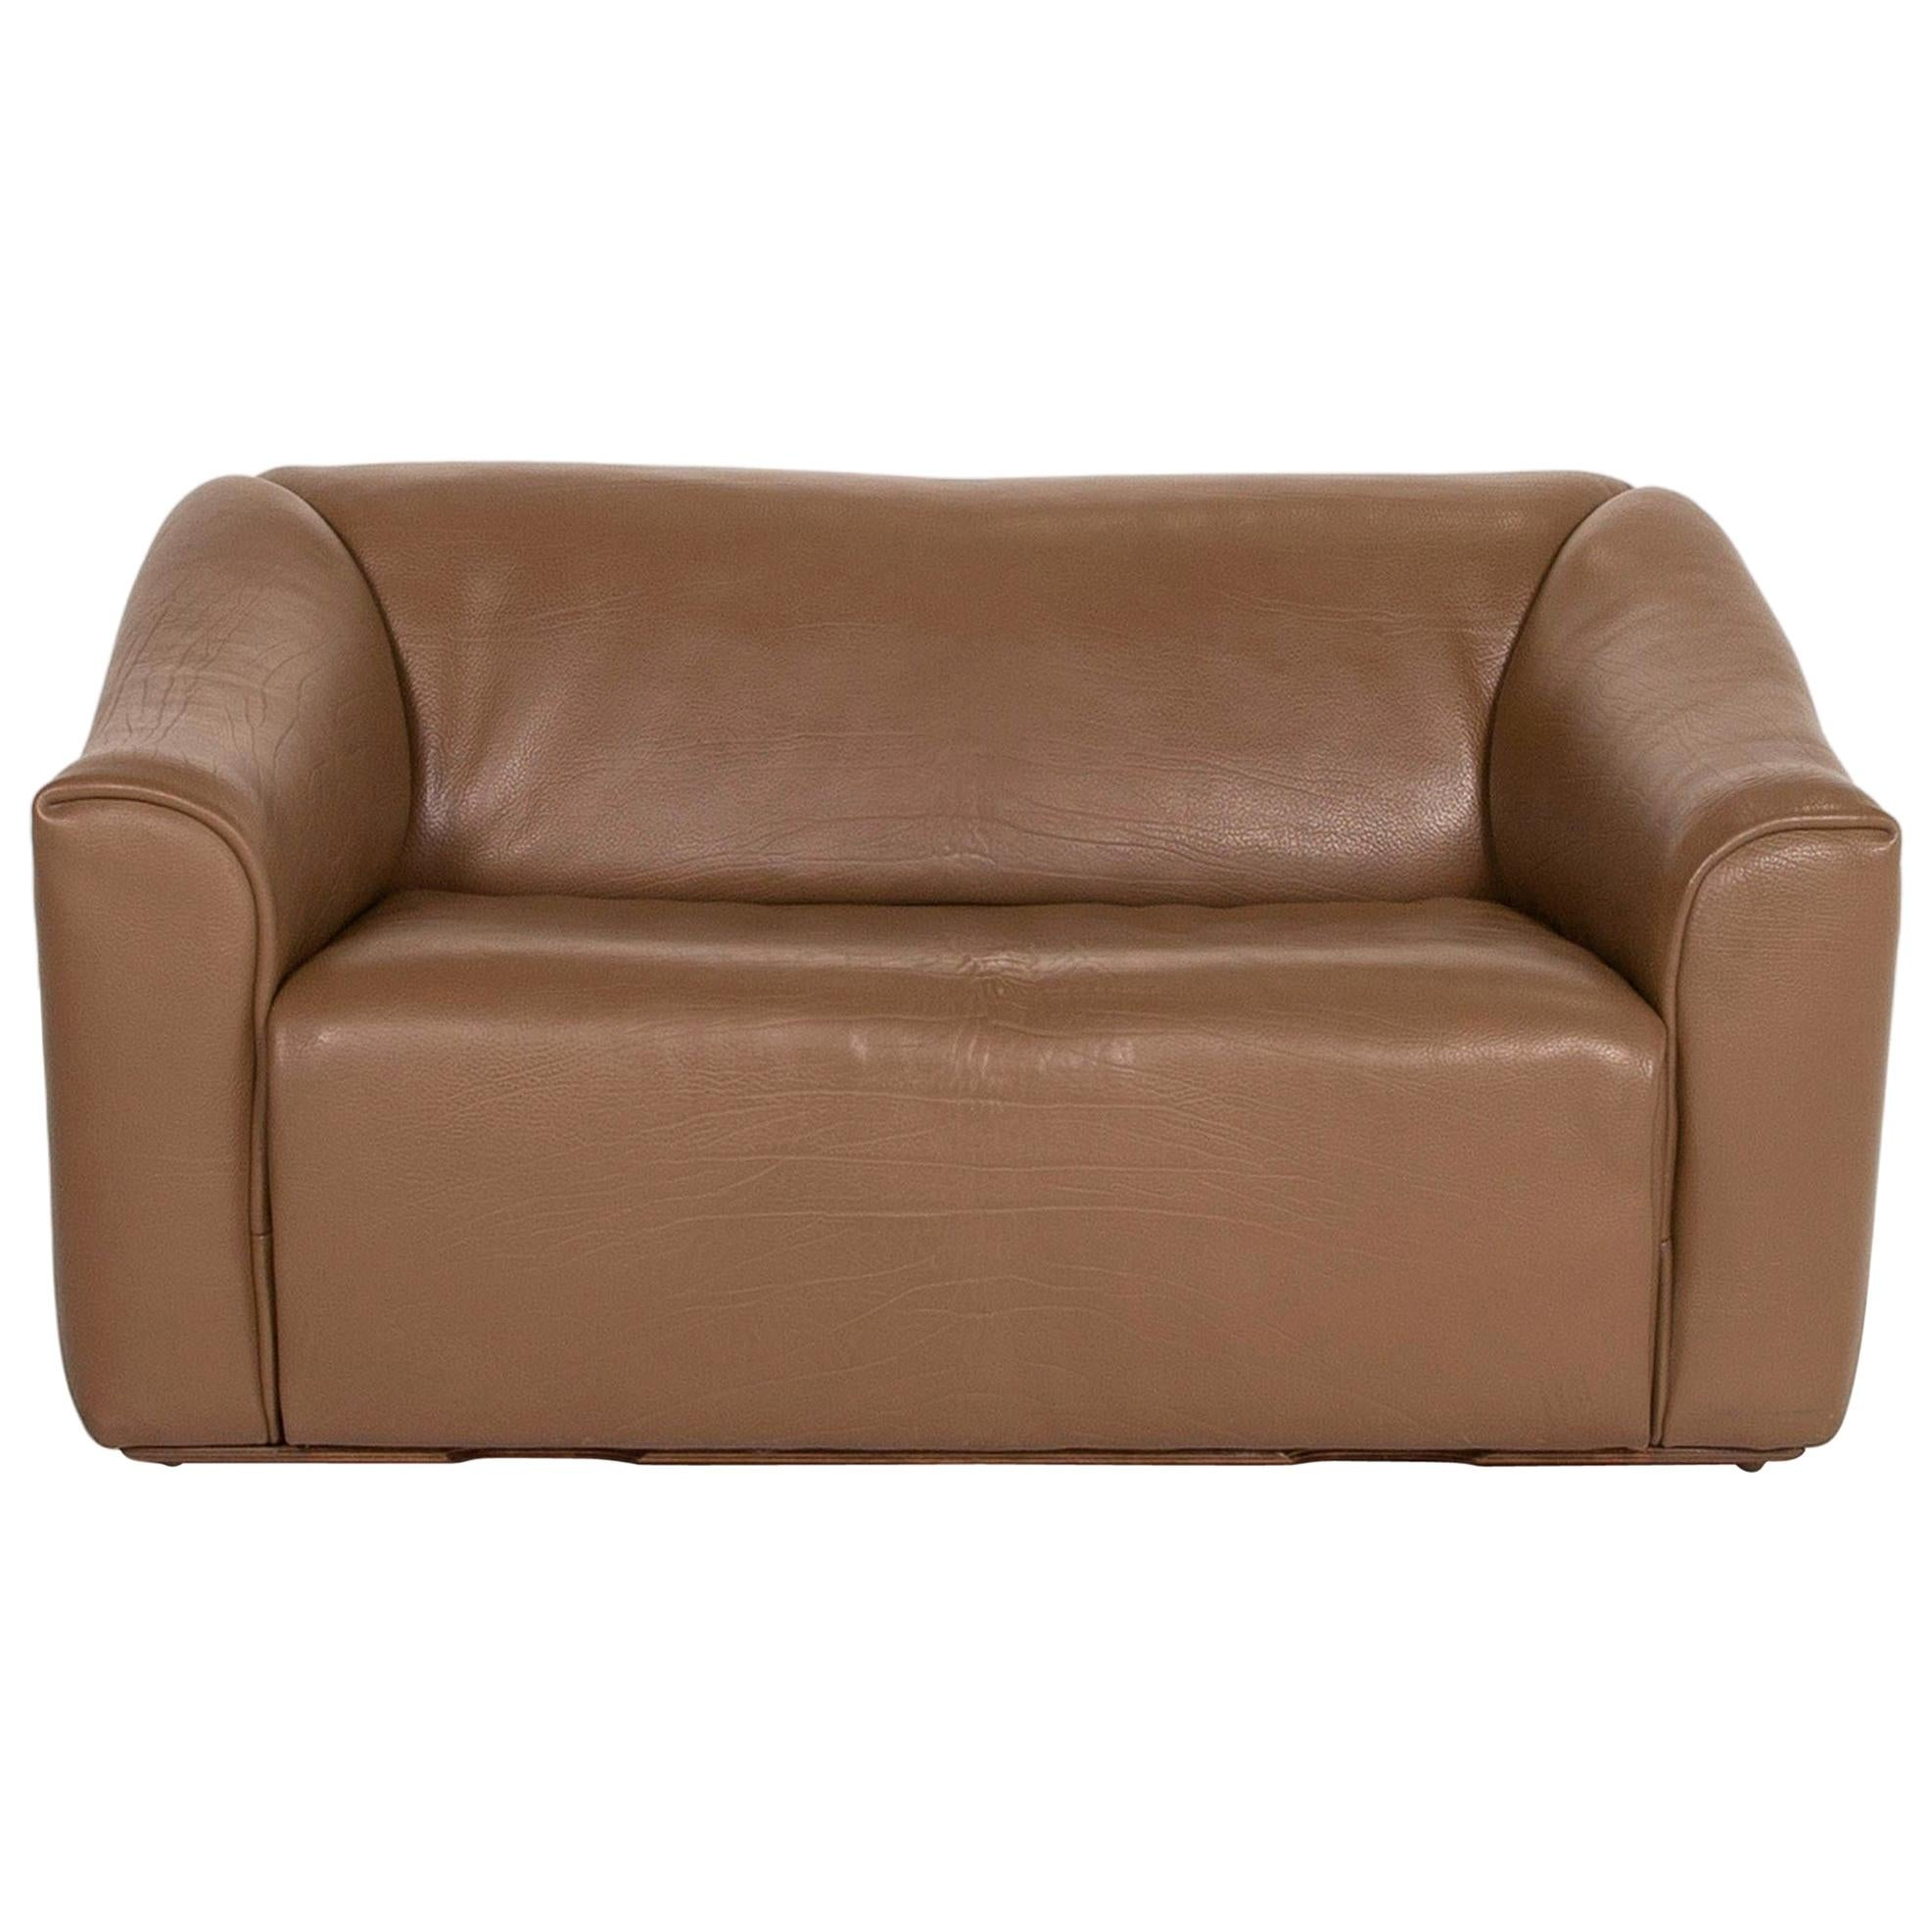 De Sede Ds 47 Leather Sofa Brown Two-Seat Function